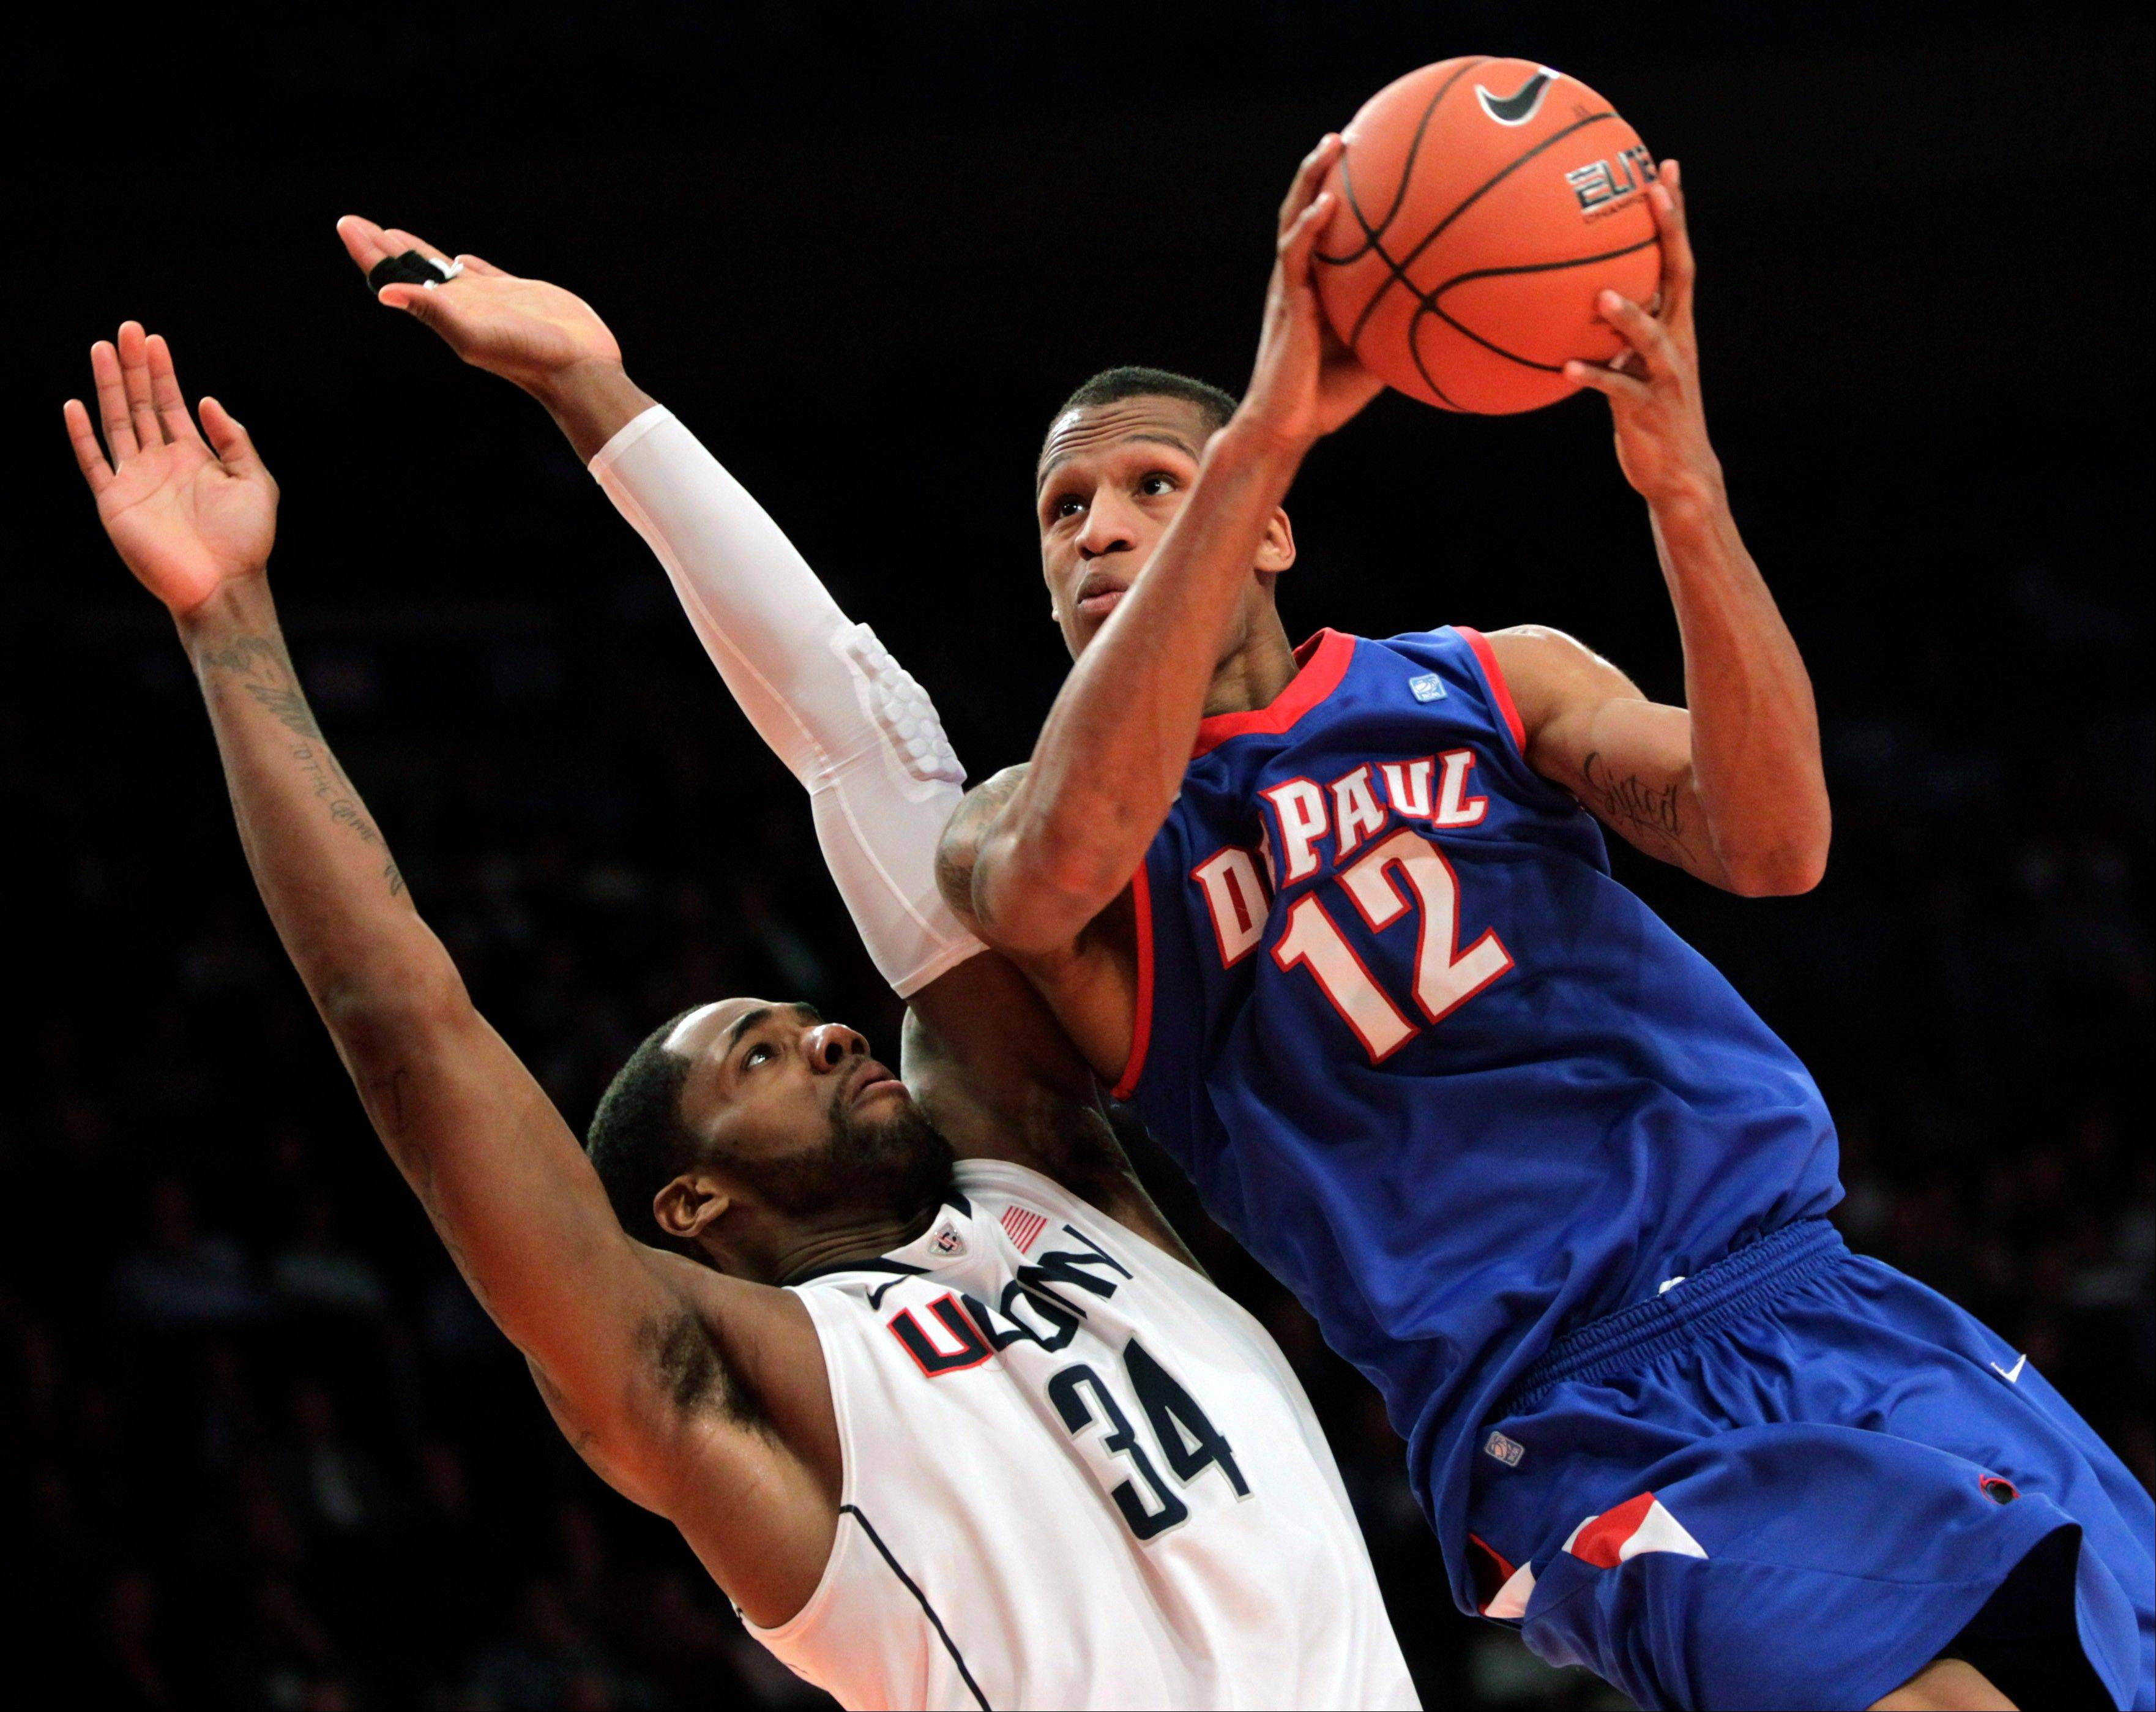 DePaul and leading scorer Cleveland Melvin (12) will open the Big East season at Allstate Arena on Jan. 2 against Seton Hall.